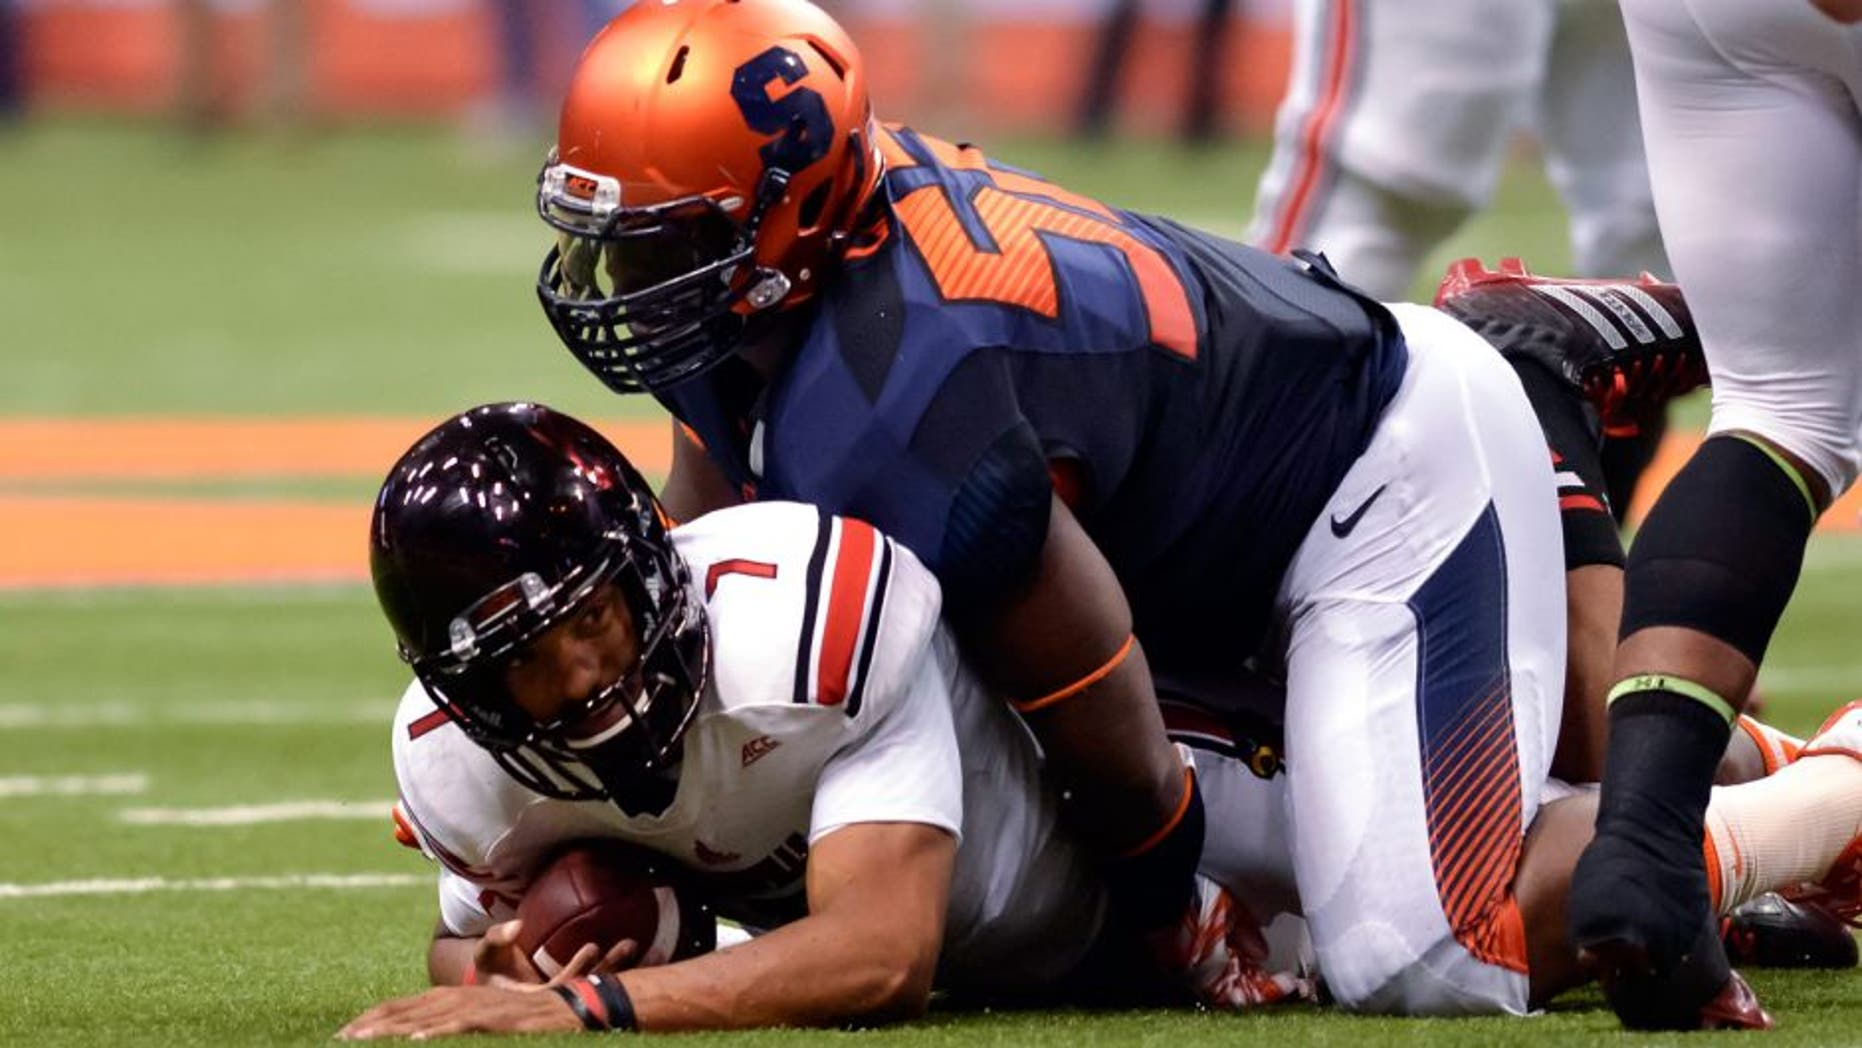 Oct 3, 2014; Syracuse, NY, USA; Louisville Cardinals quarterback Reggie Bonnafon (7) is sacked by Syracuse Orange nose tackle Eric Crume (52) during the second quarter of a game at the Carrier Dome. Mandatory Credit: Mark Konezny-USA TODAY Sports